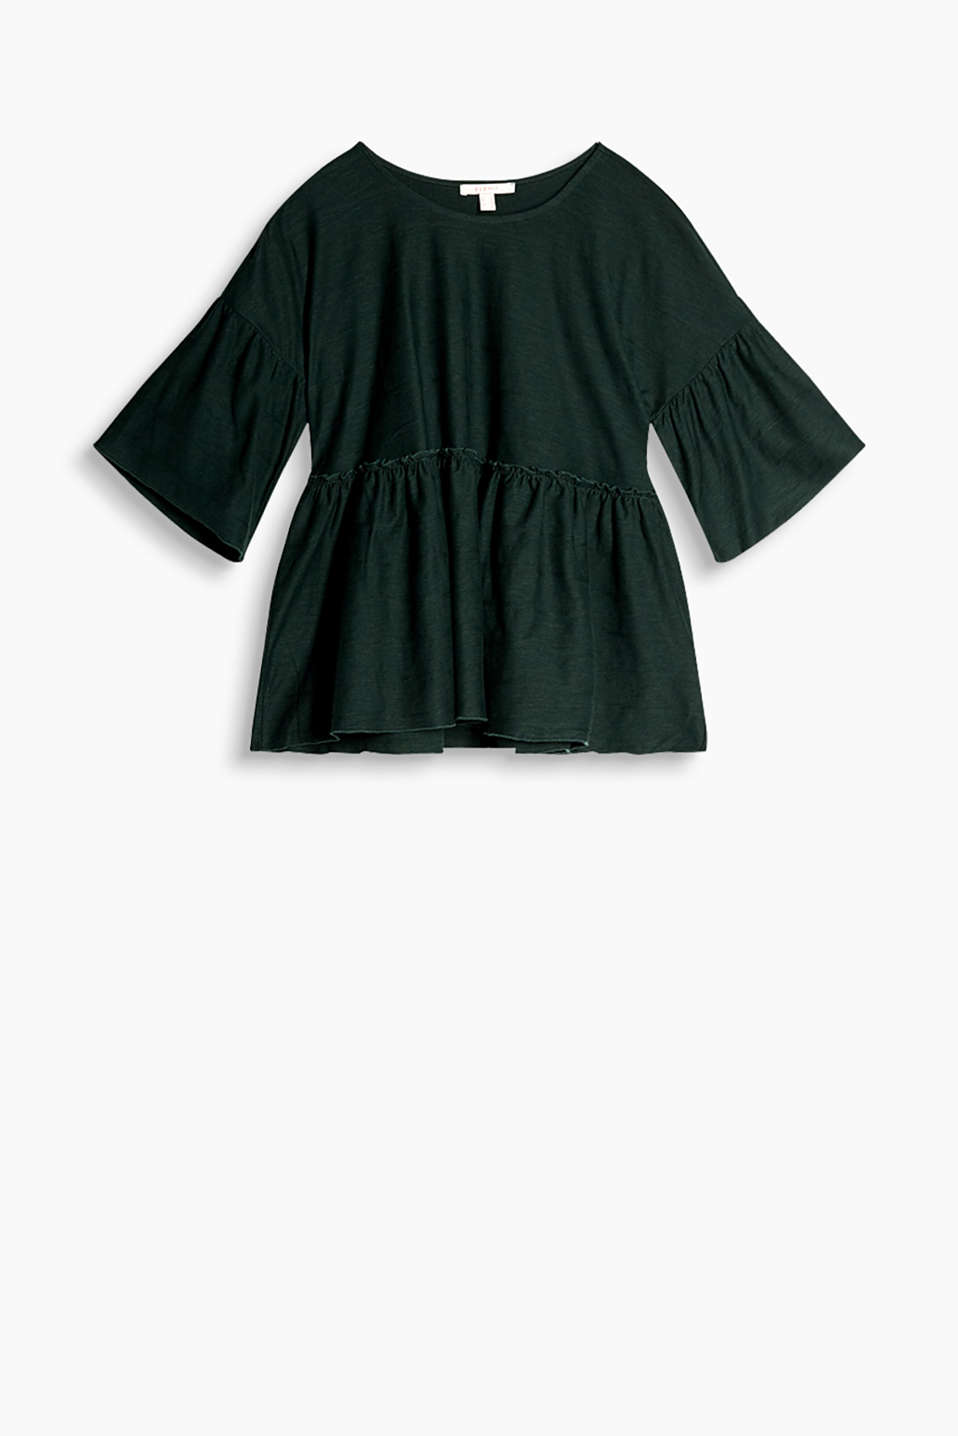 Casual slub jersey top in a fashionable width with a wide peplum and textured stripes